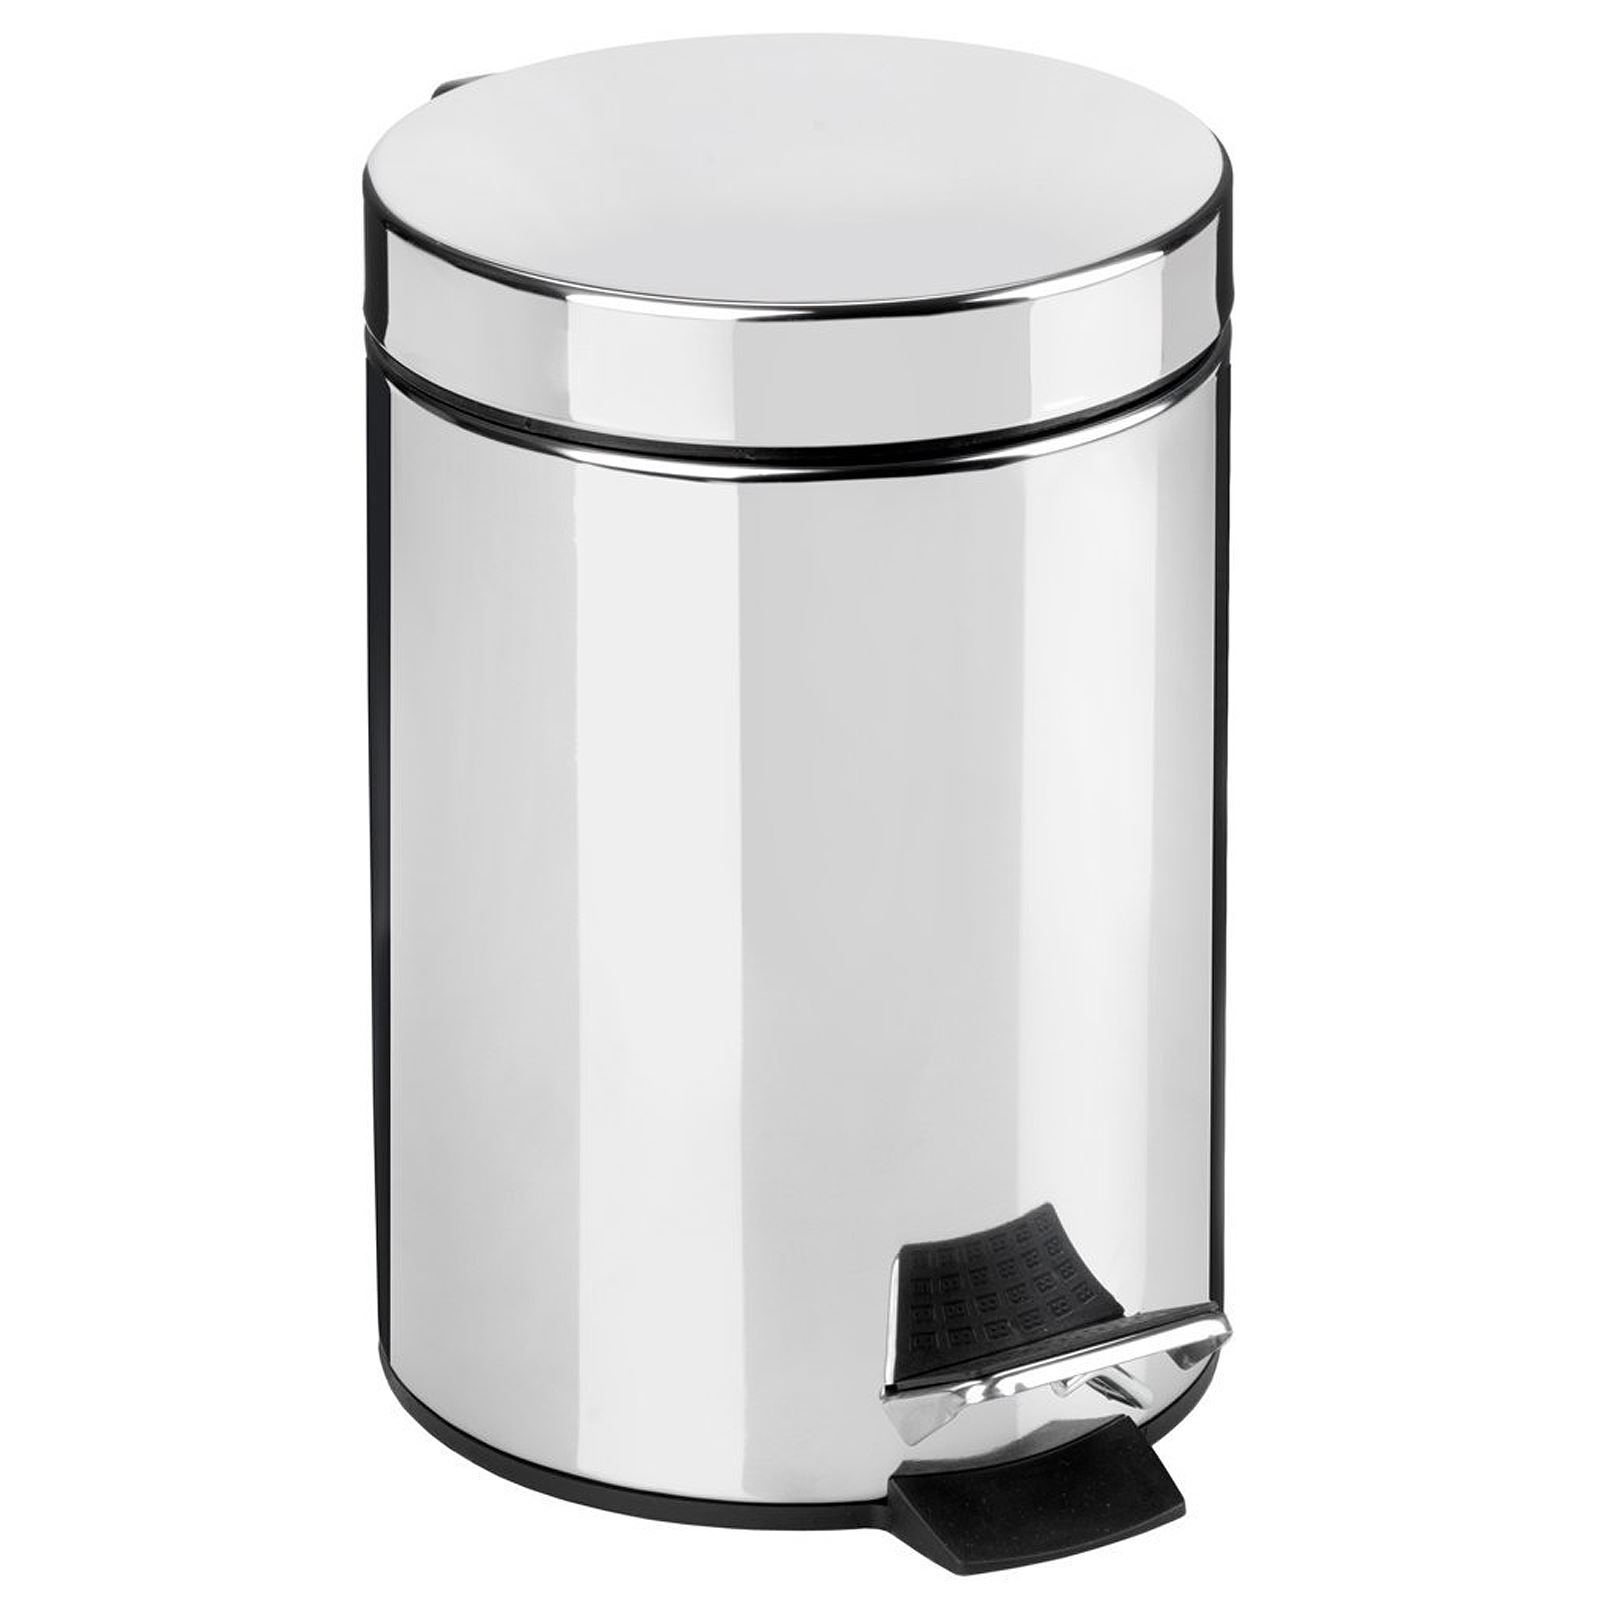 3l litre small pedal bin rubbish hygienic stainless steel. Black Bedroom Furniture Sets. Home Design Ideas